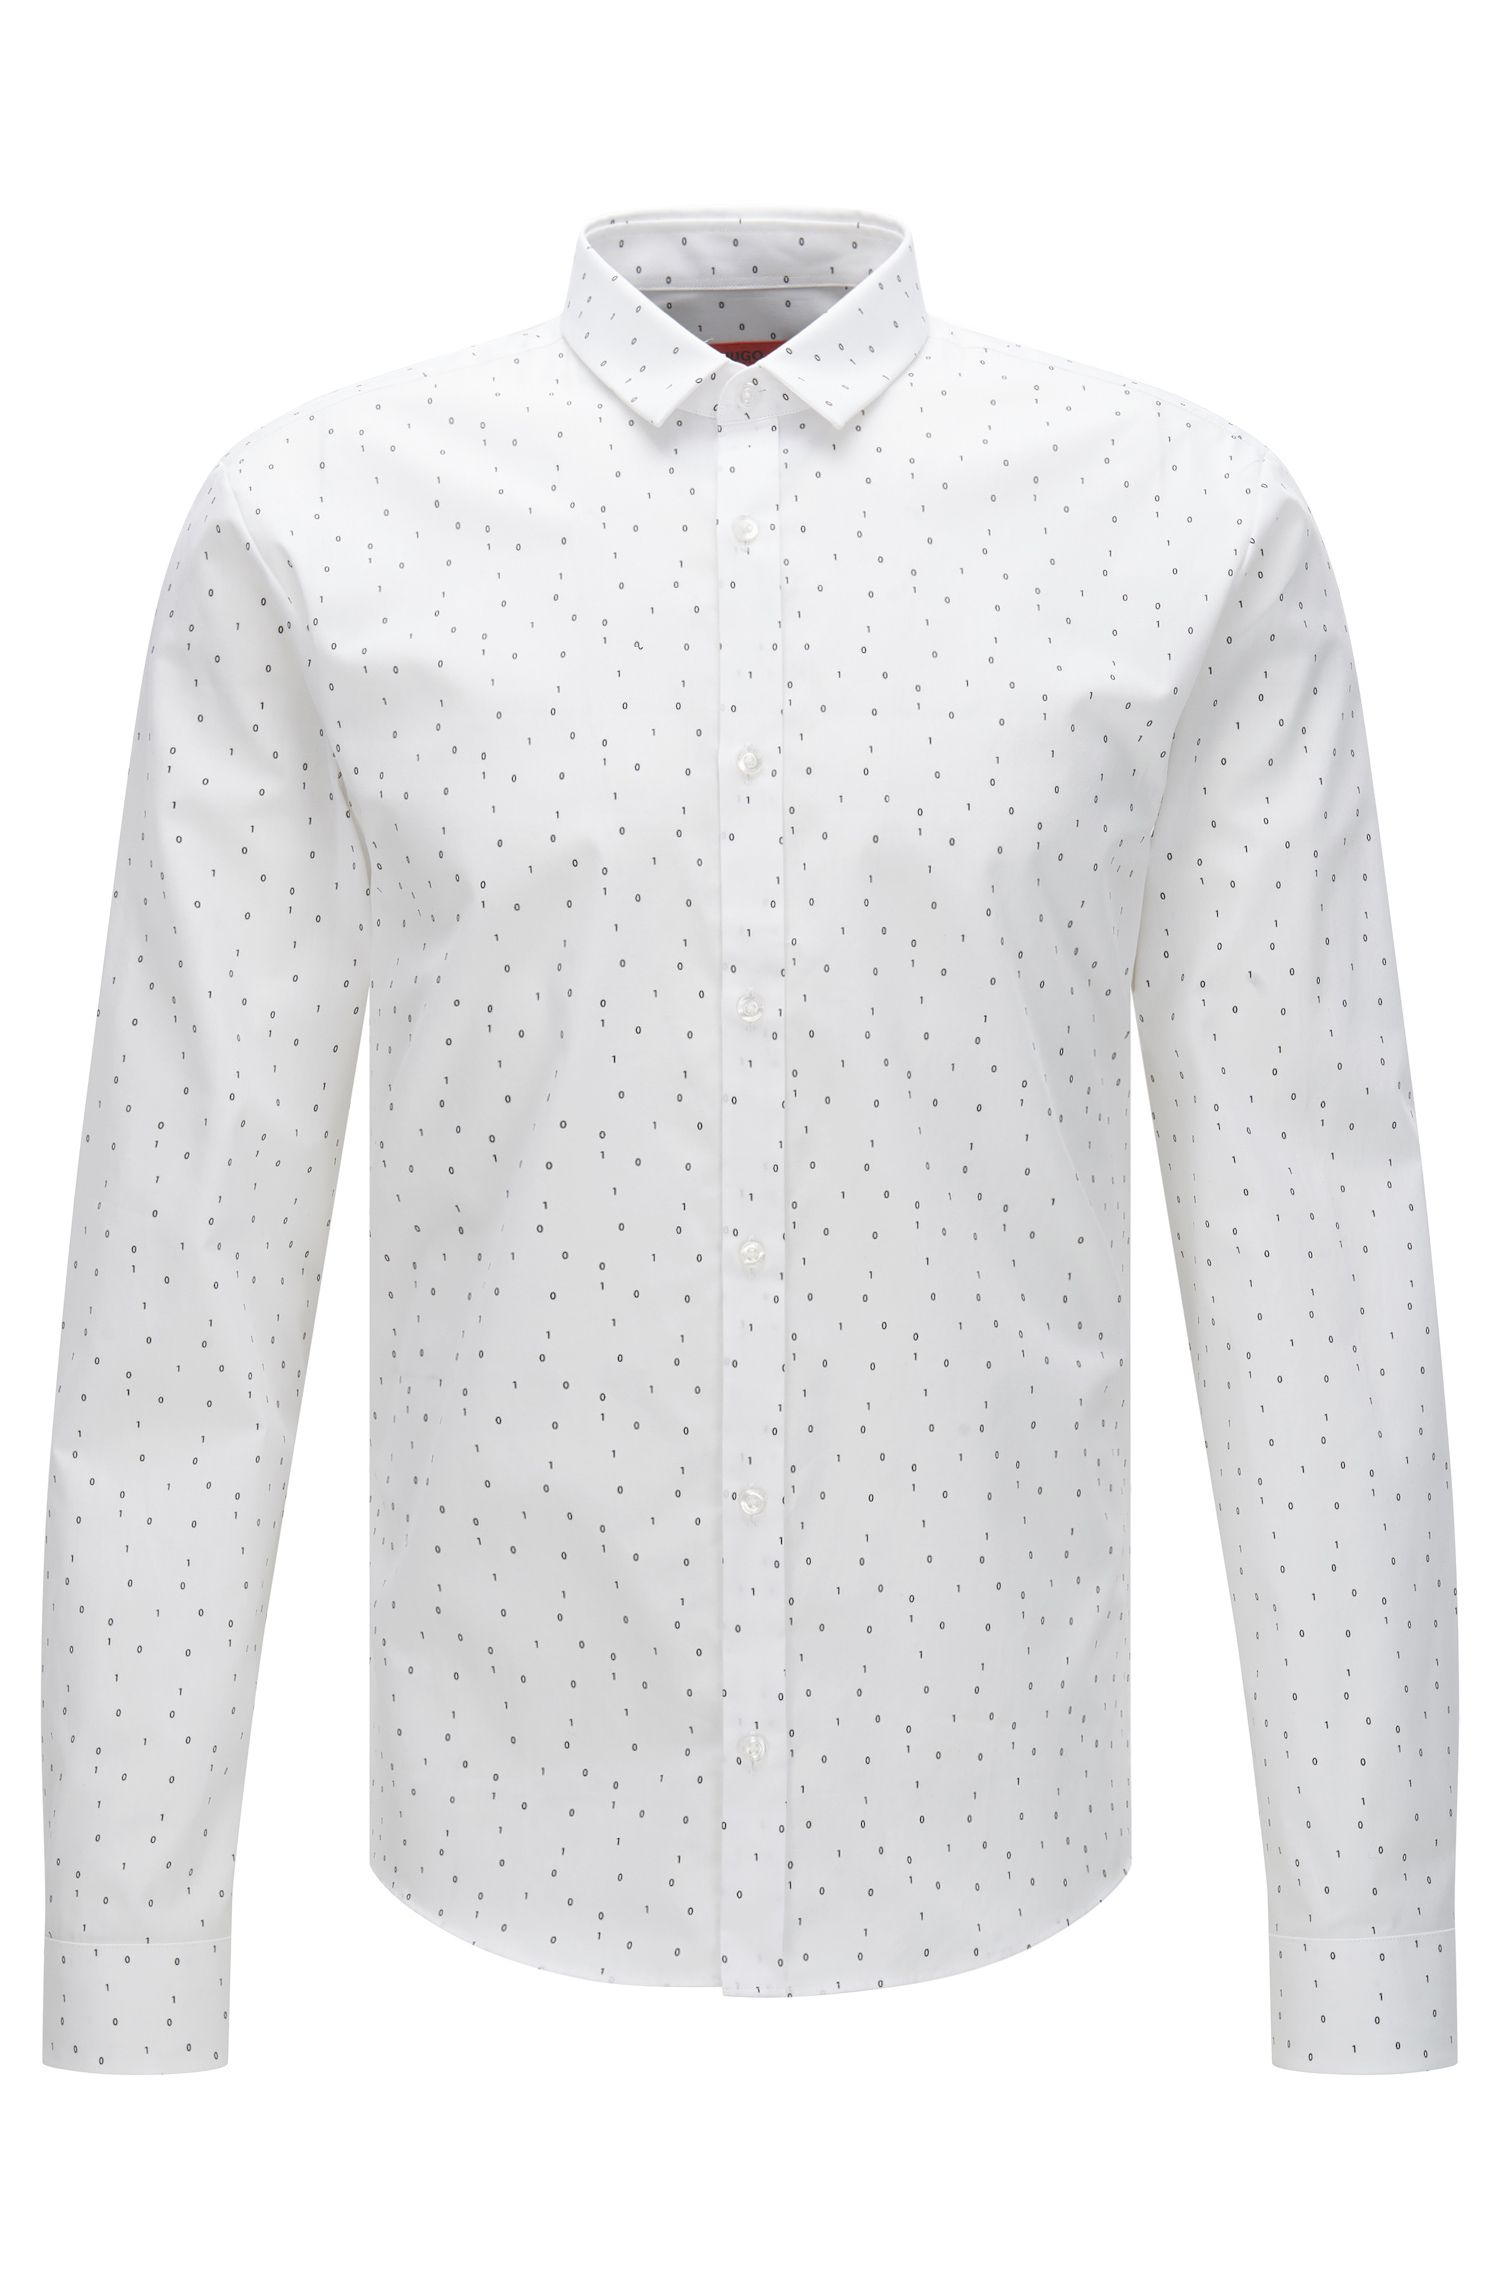 Patterned extra-slim-fit shirt in cotton: 'Ero3'